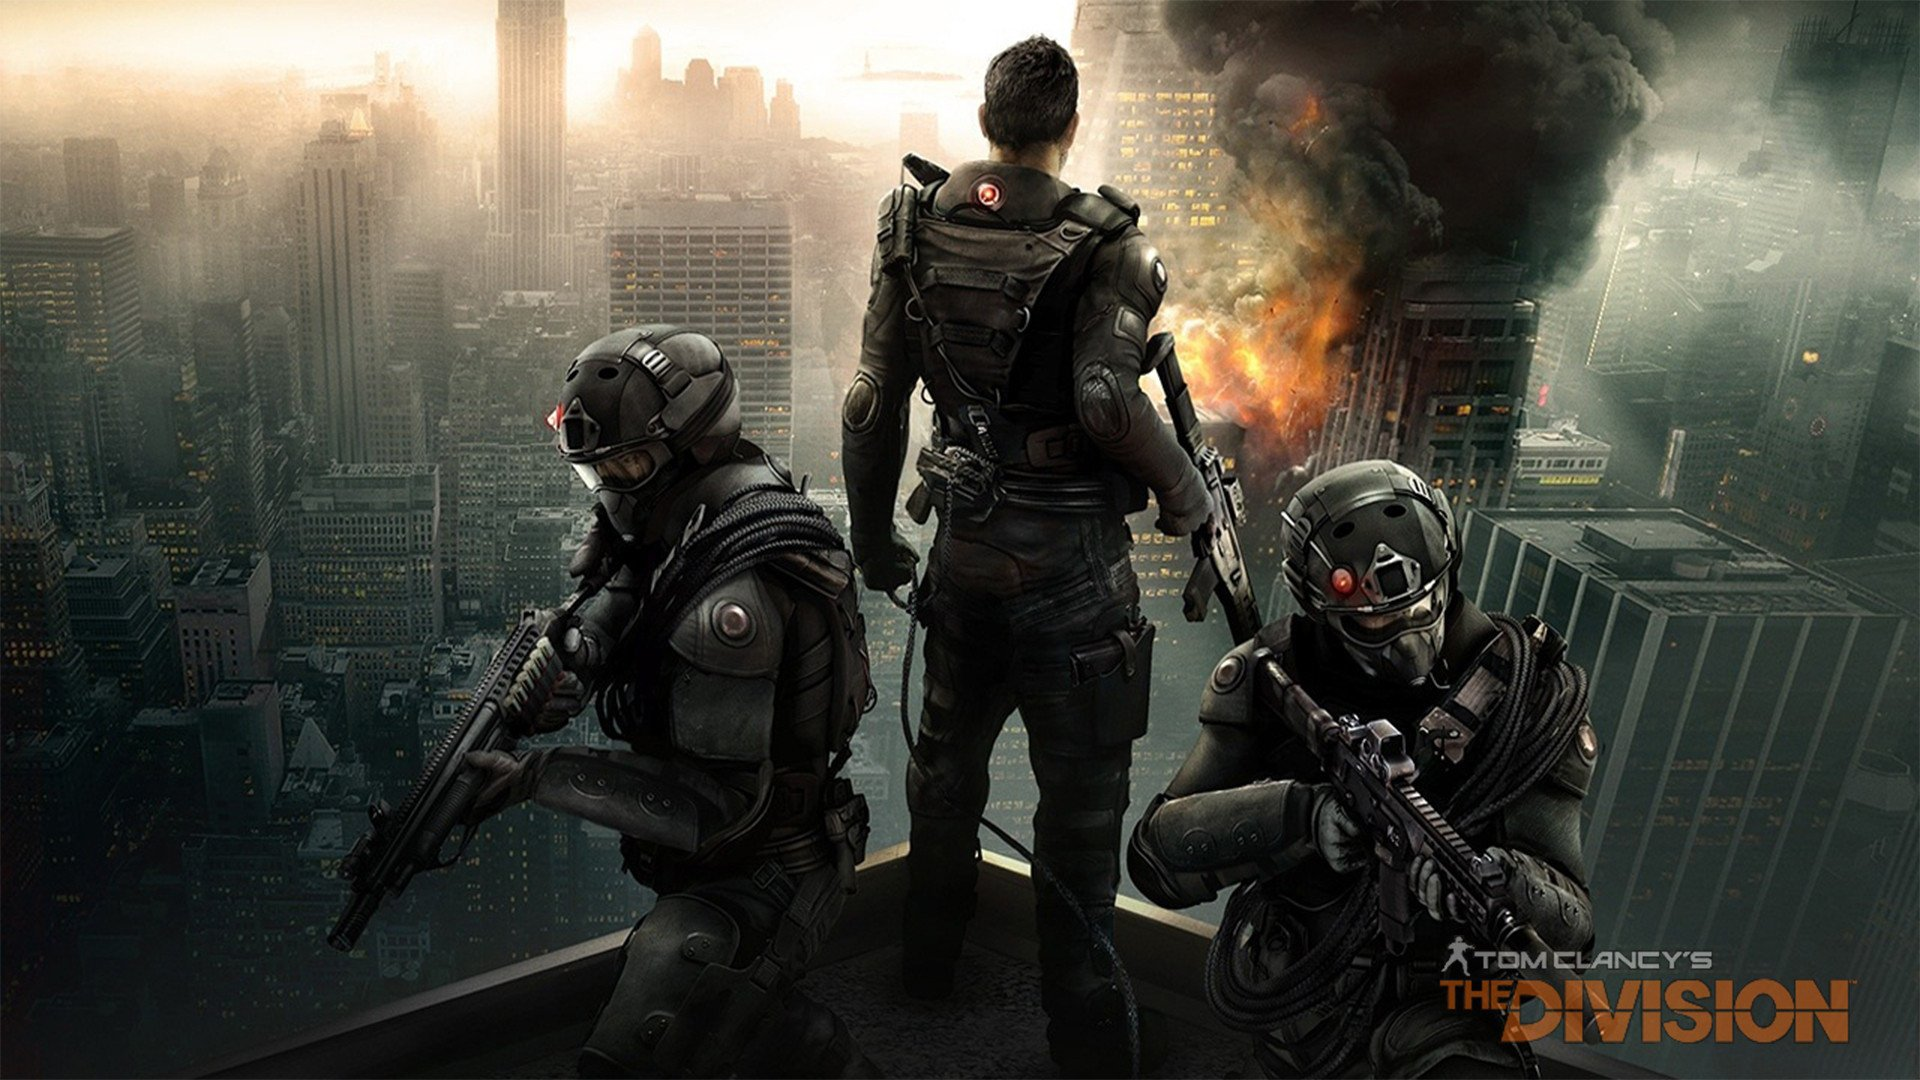 45 Tom Clancys The Division Wallpaper On Wallpapersafari